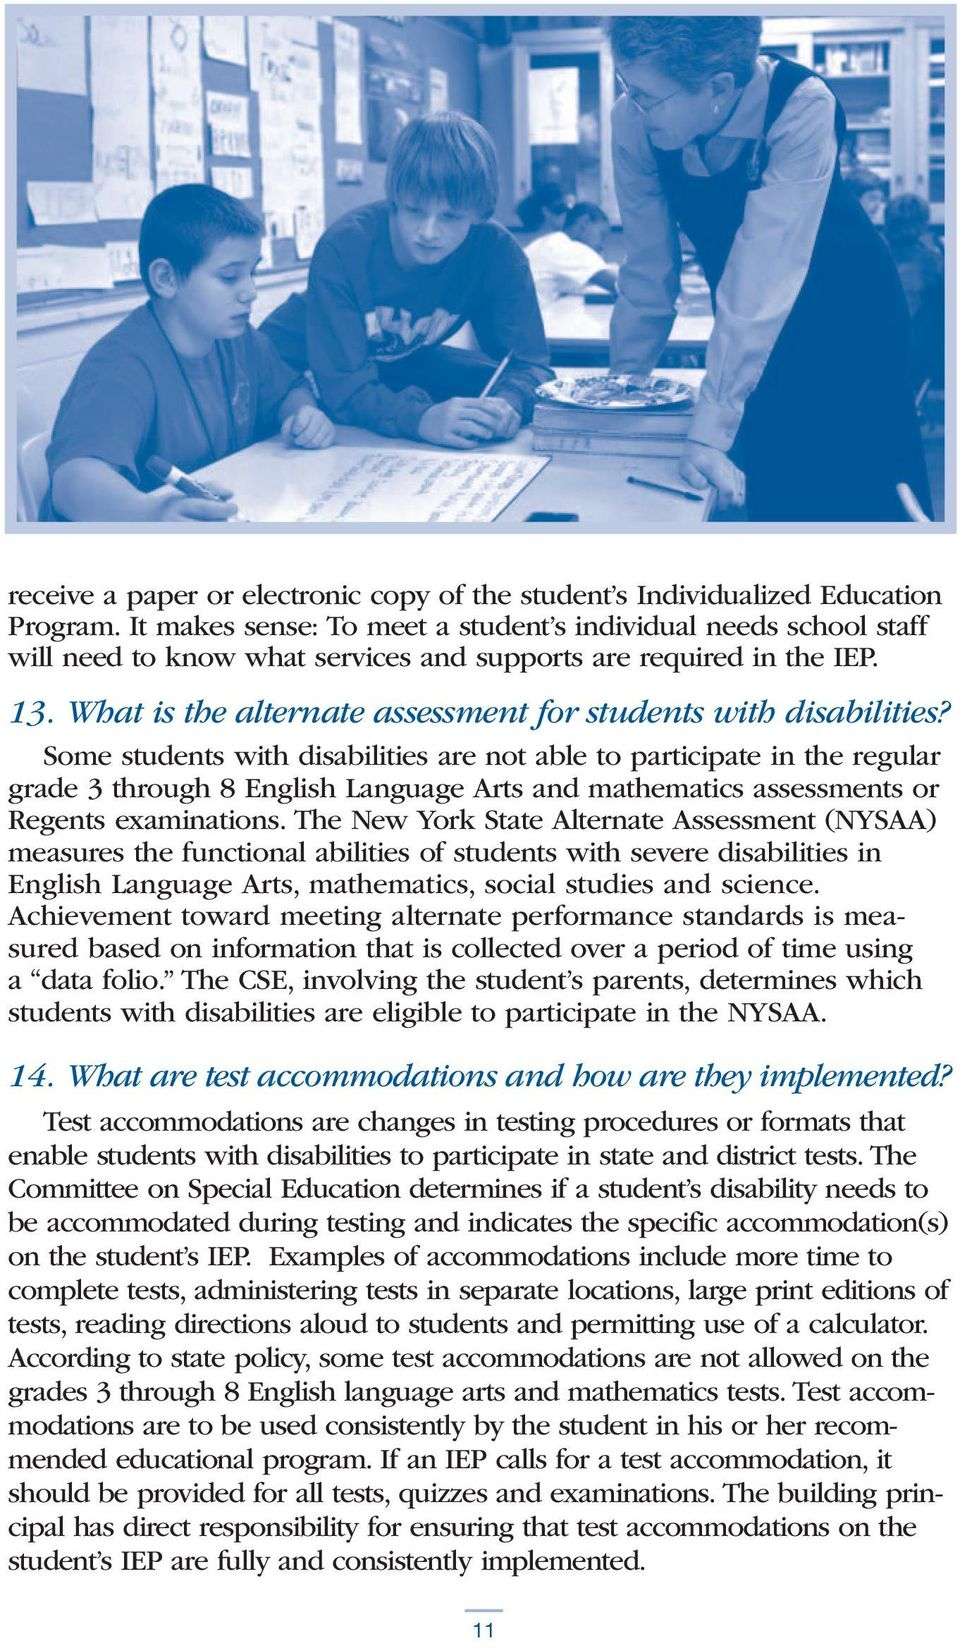 What is the alternate assessment for students with disabilities?